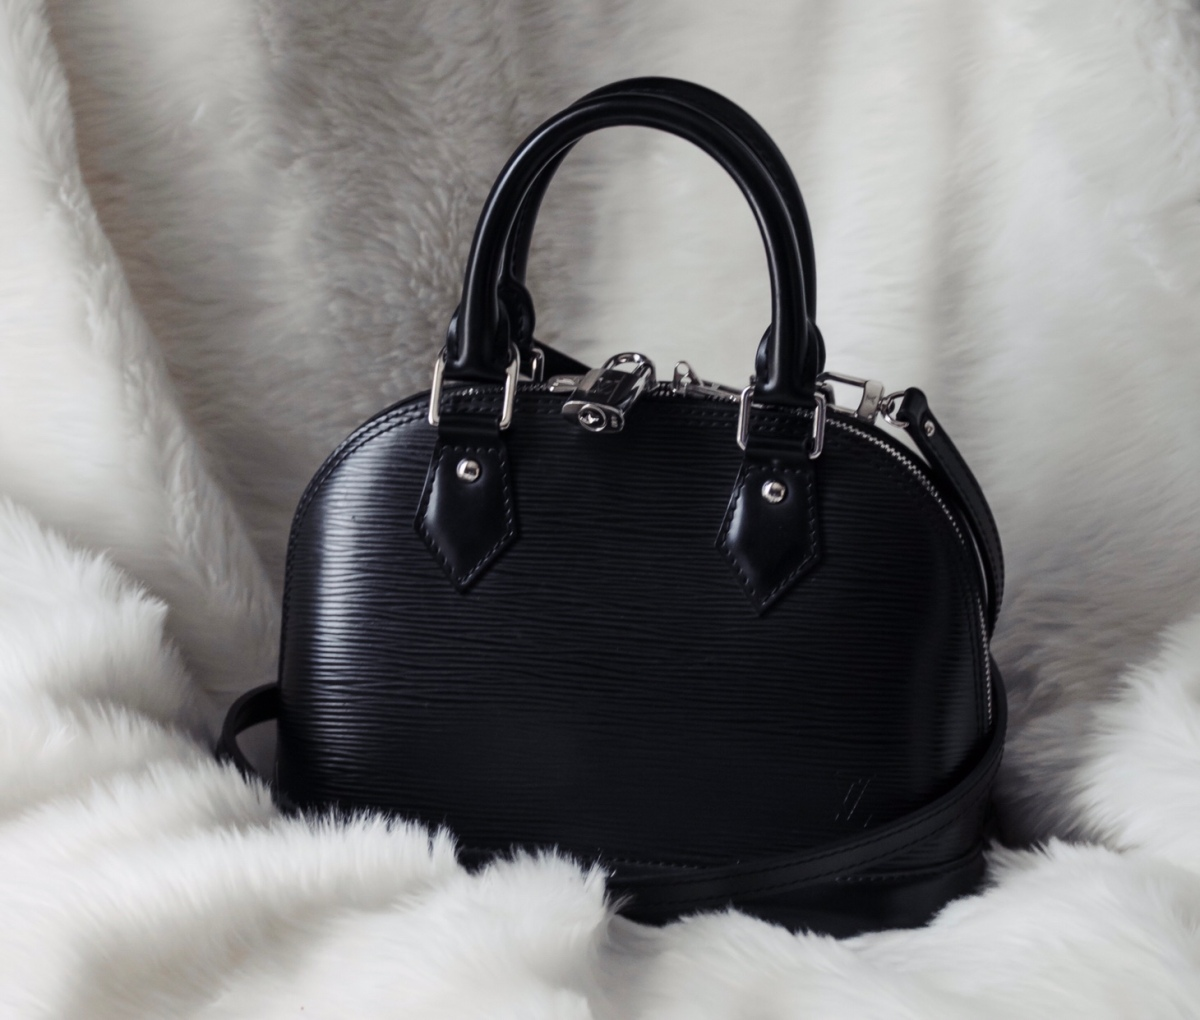 17a4463280d4 Bag Review  Louis Vuitton Black Epi Alma BB – Becca Risa Luna